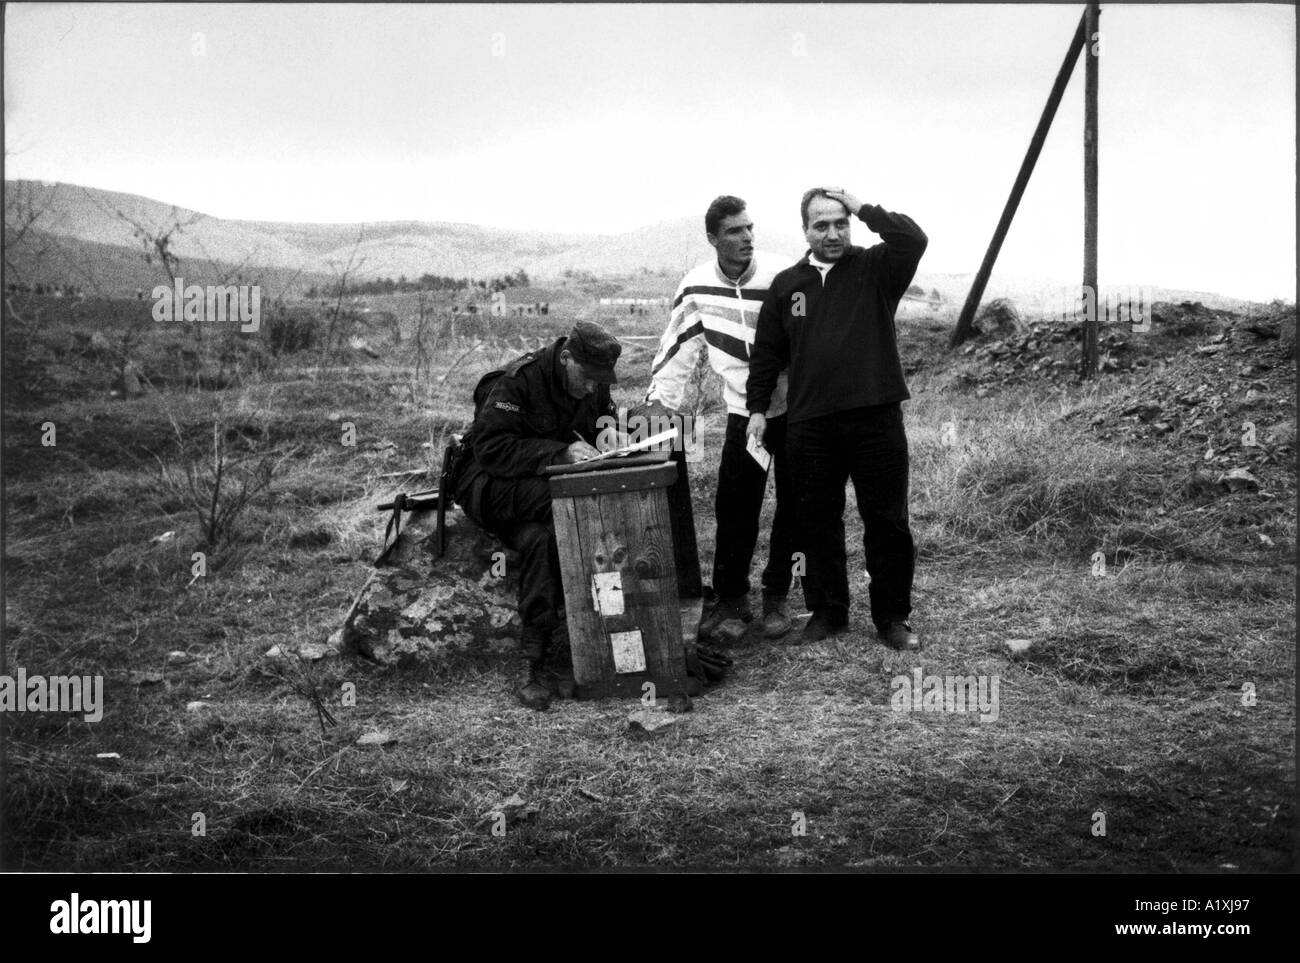 Kosovan refugees without passport or identification papers on the border between Kosovo and Macedonia - Stock Image